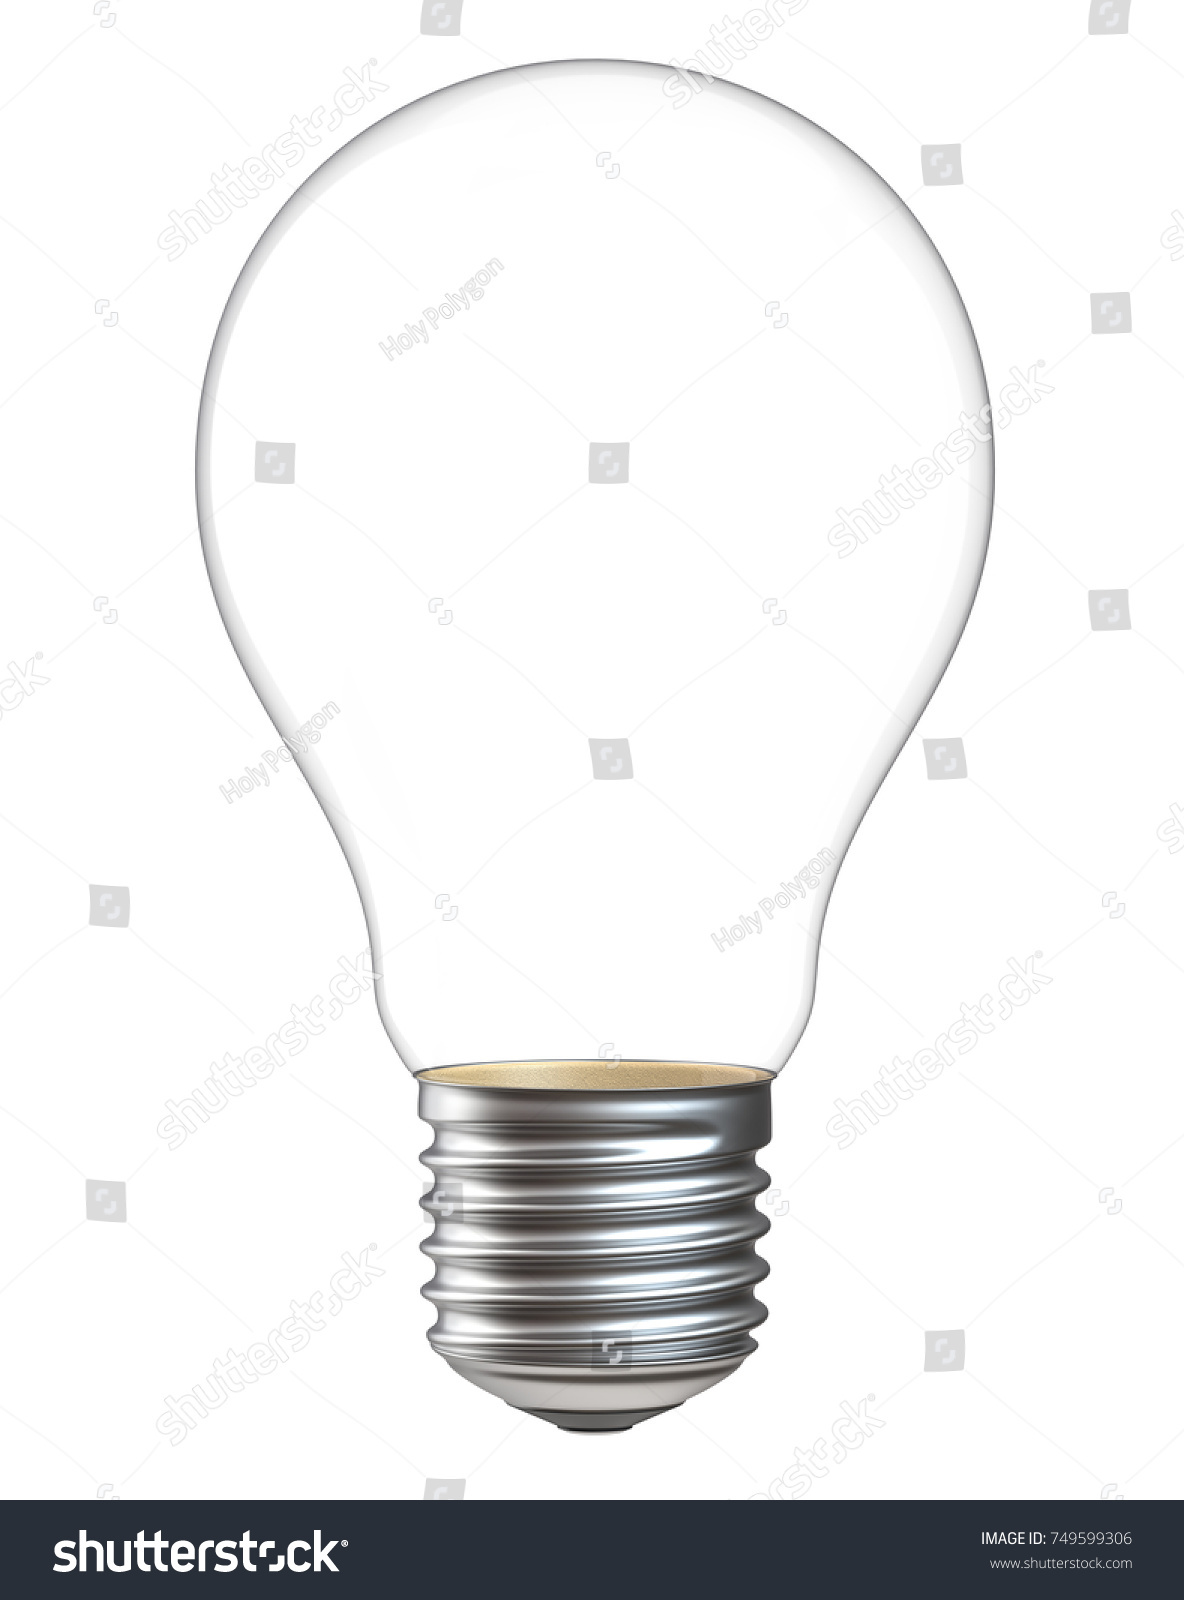 3 D Illustration Empty Light Bulb Isolated Stock Illustration ...